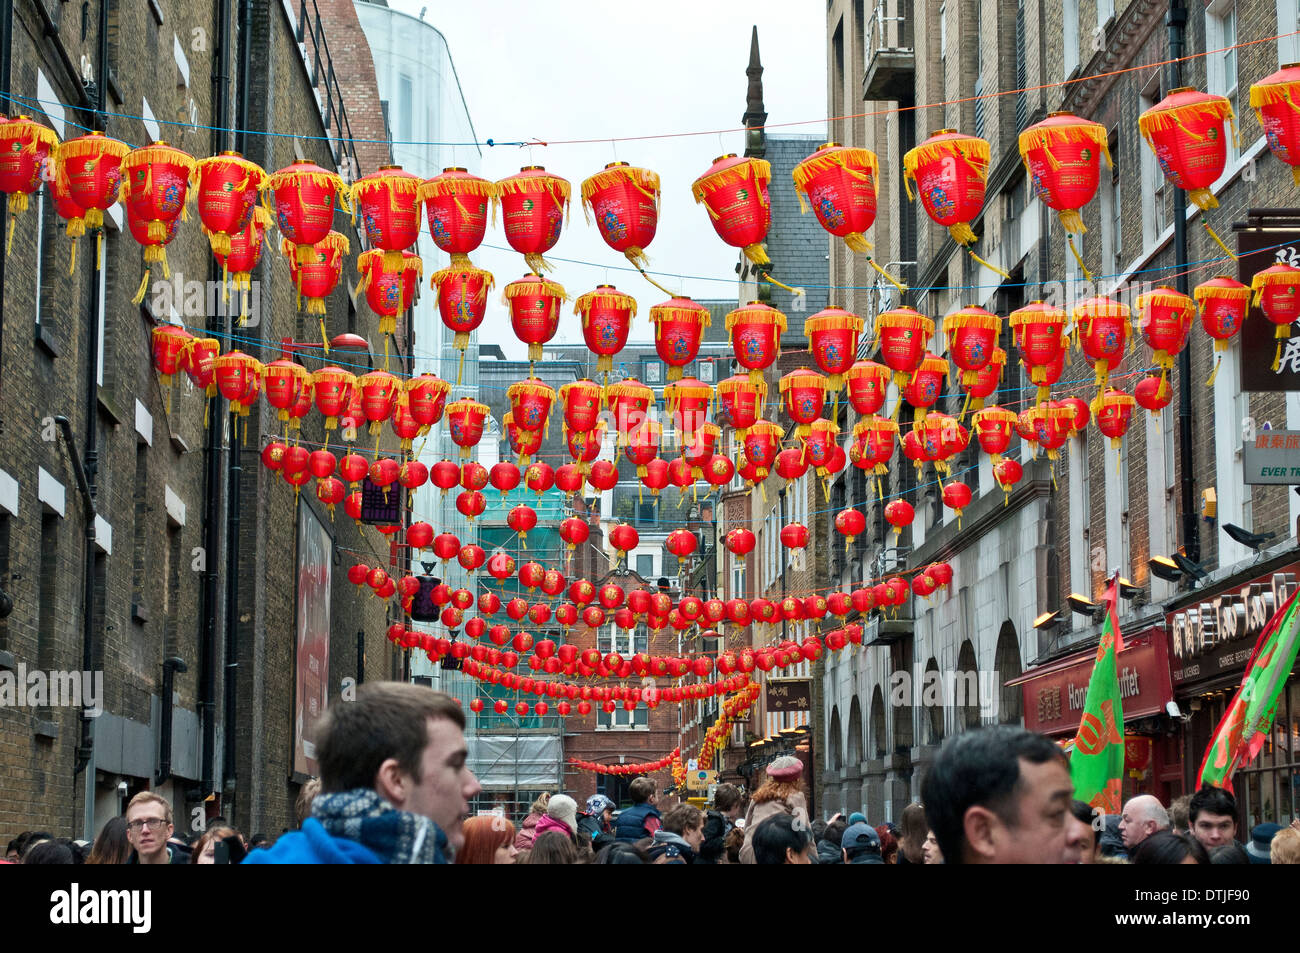 Chinese New Year Decorations In Lisle Street, Chinatown, Soho, London, WC2,  UK